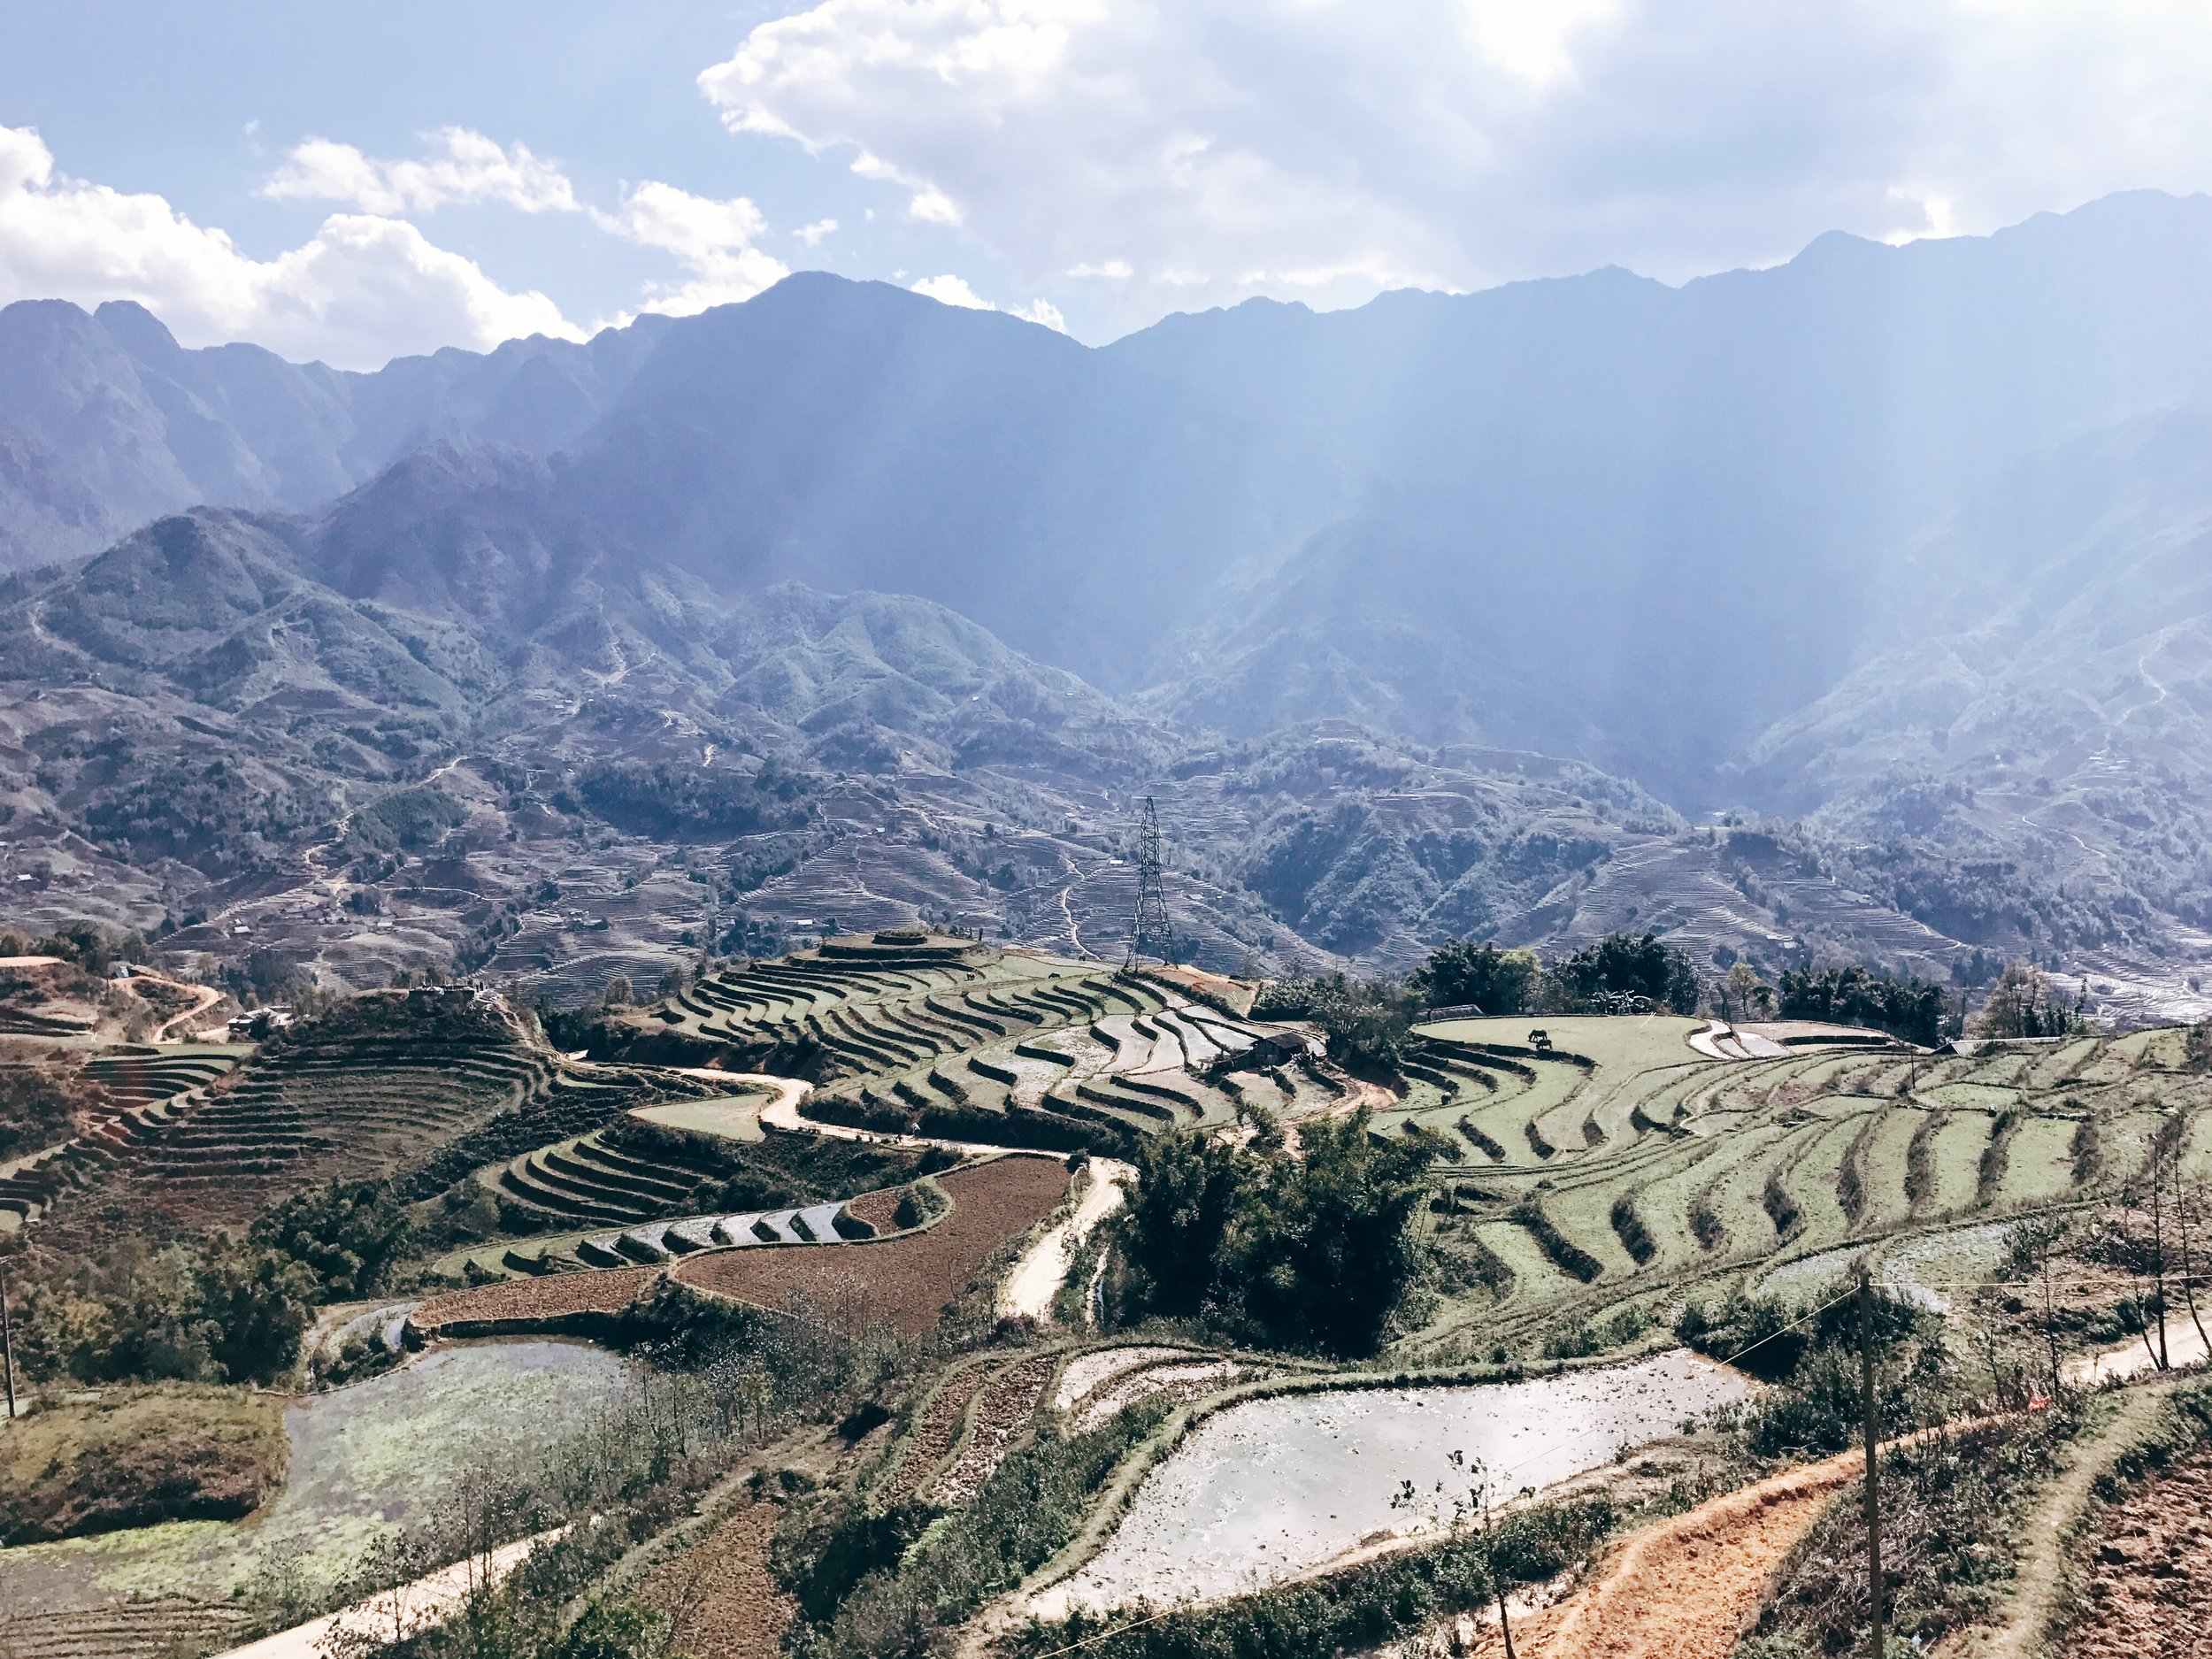 The view of the trail from Sapa Clay House